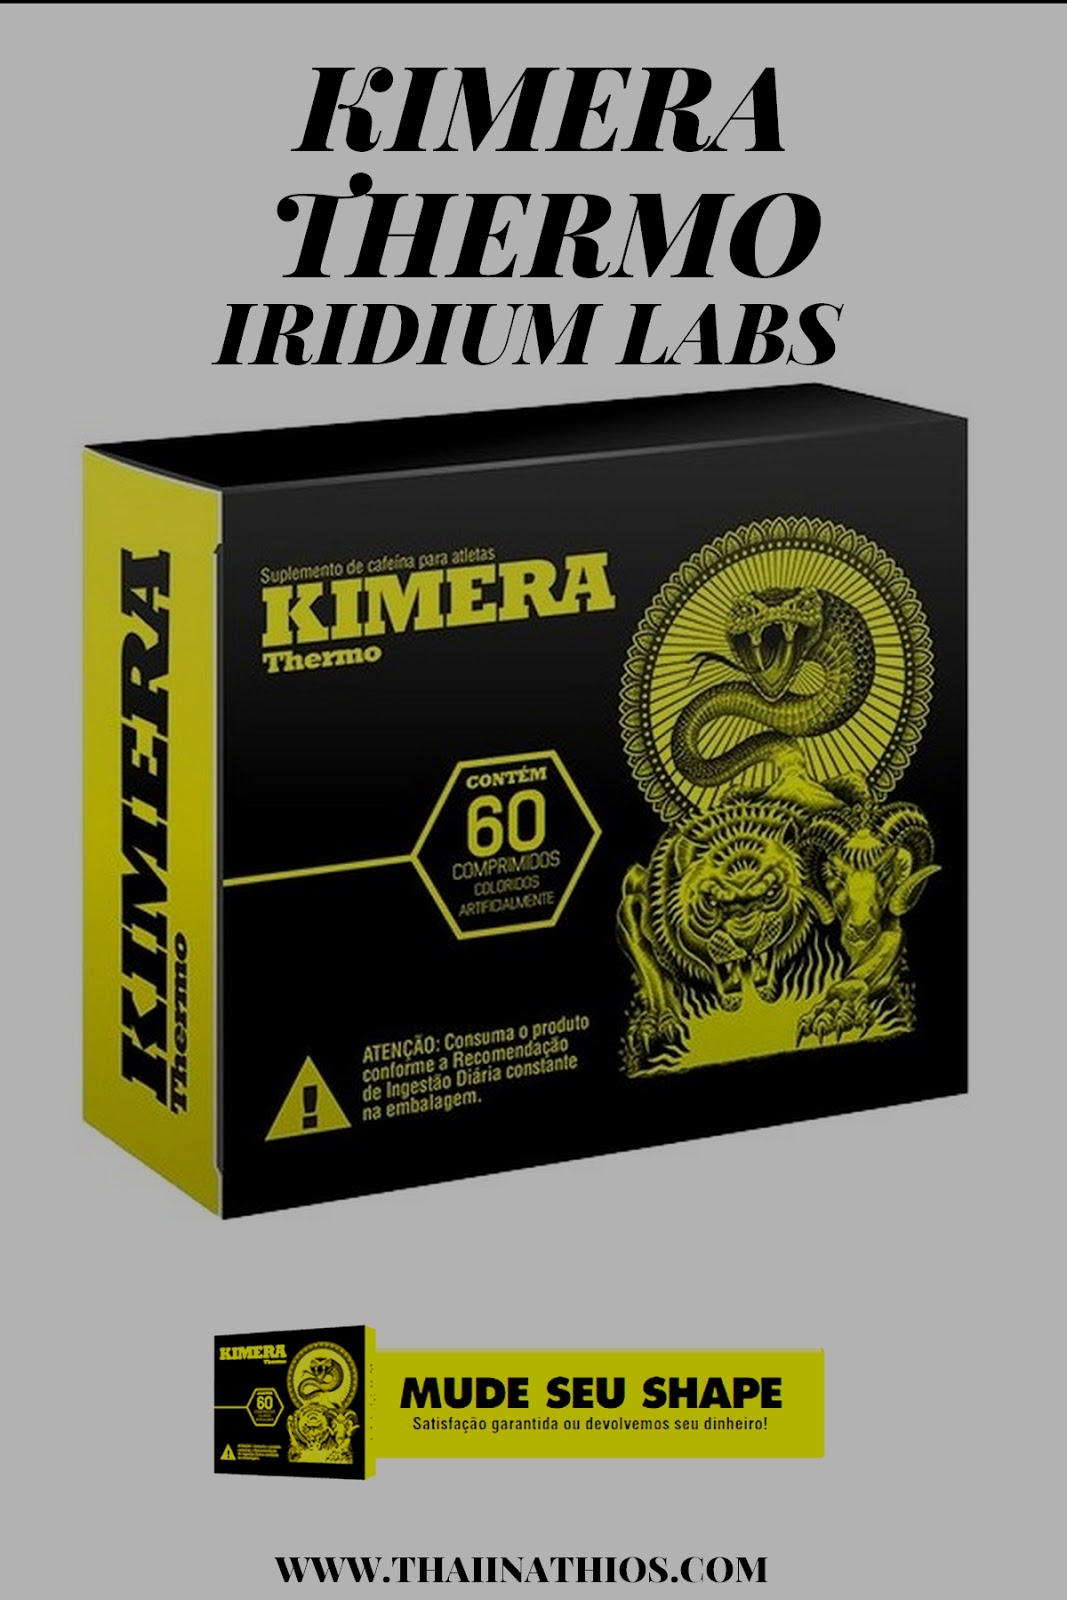 Kimera Thermo | Iridium Labs